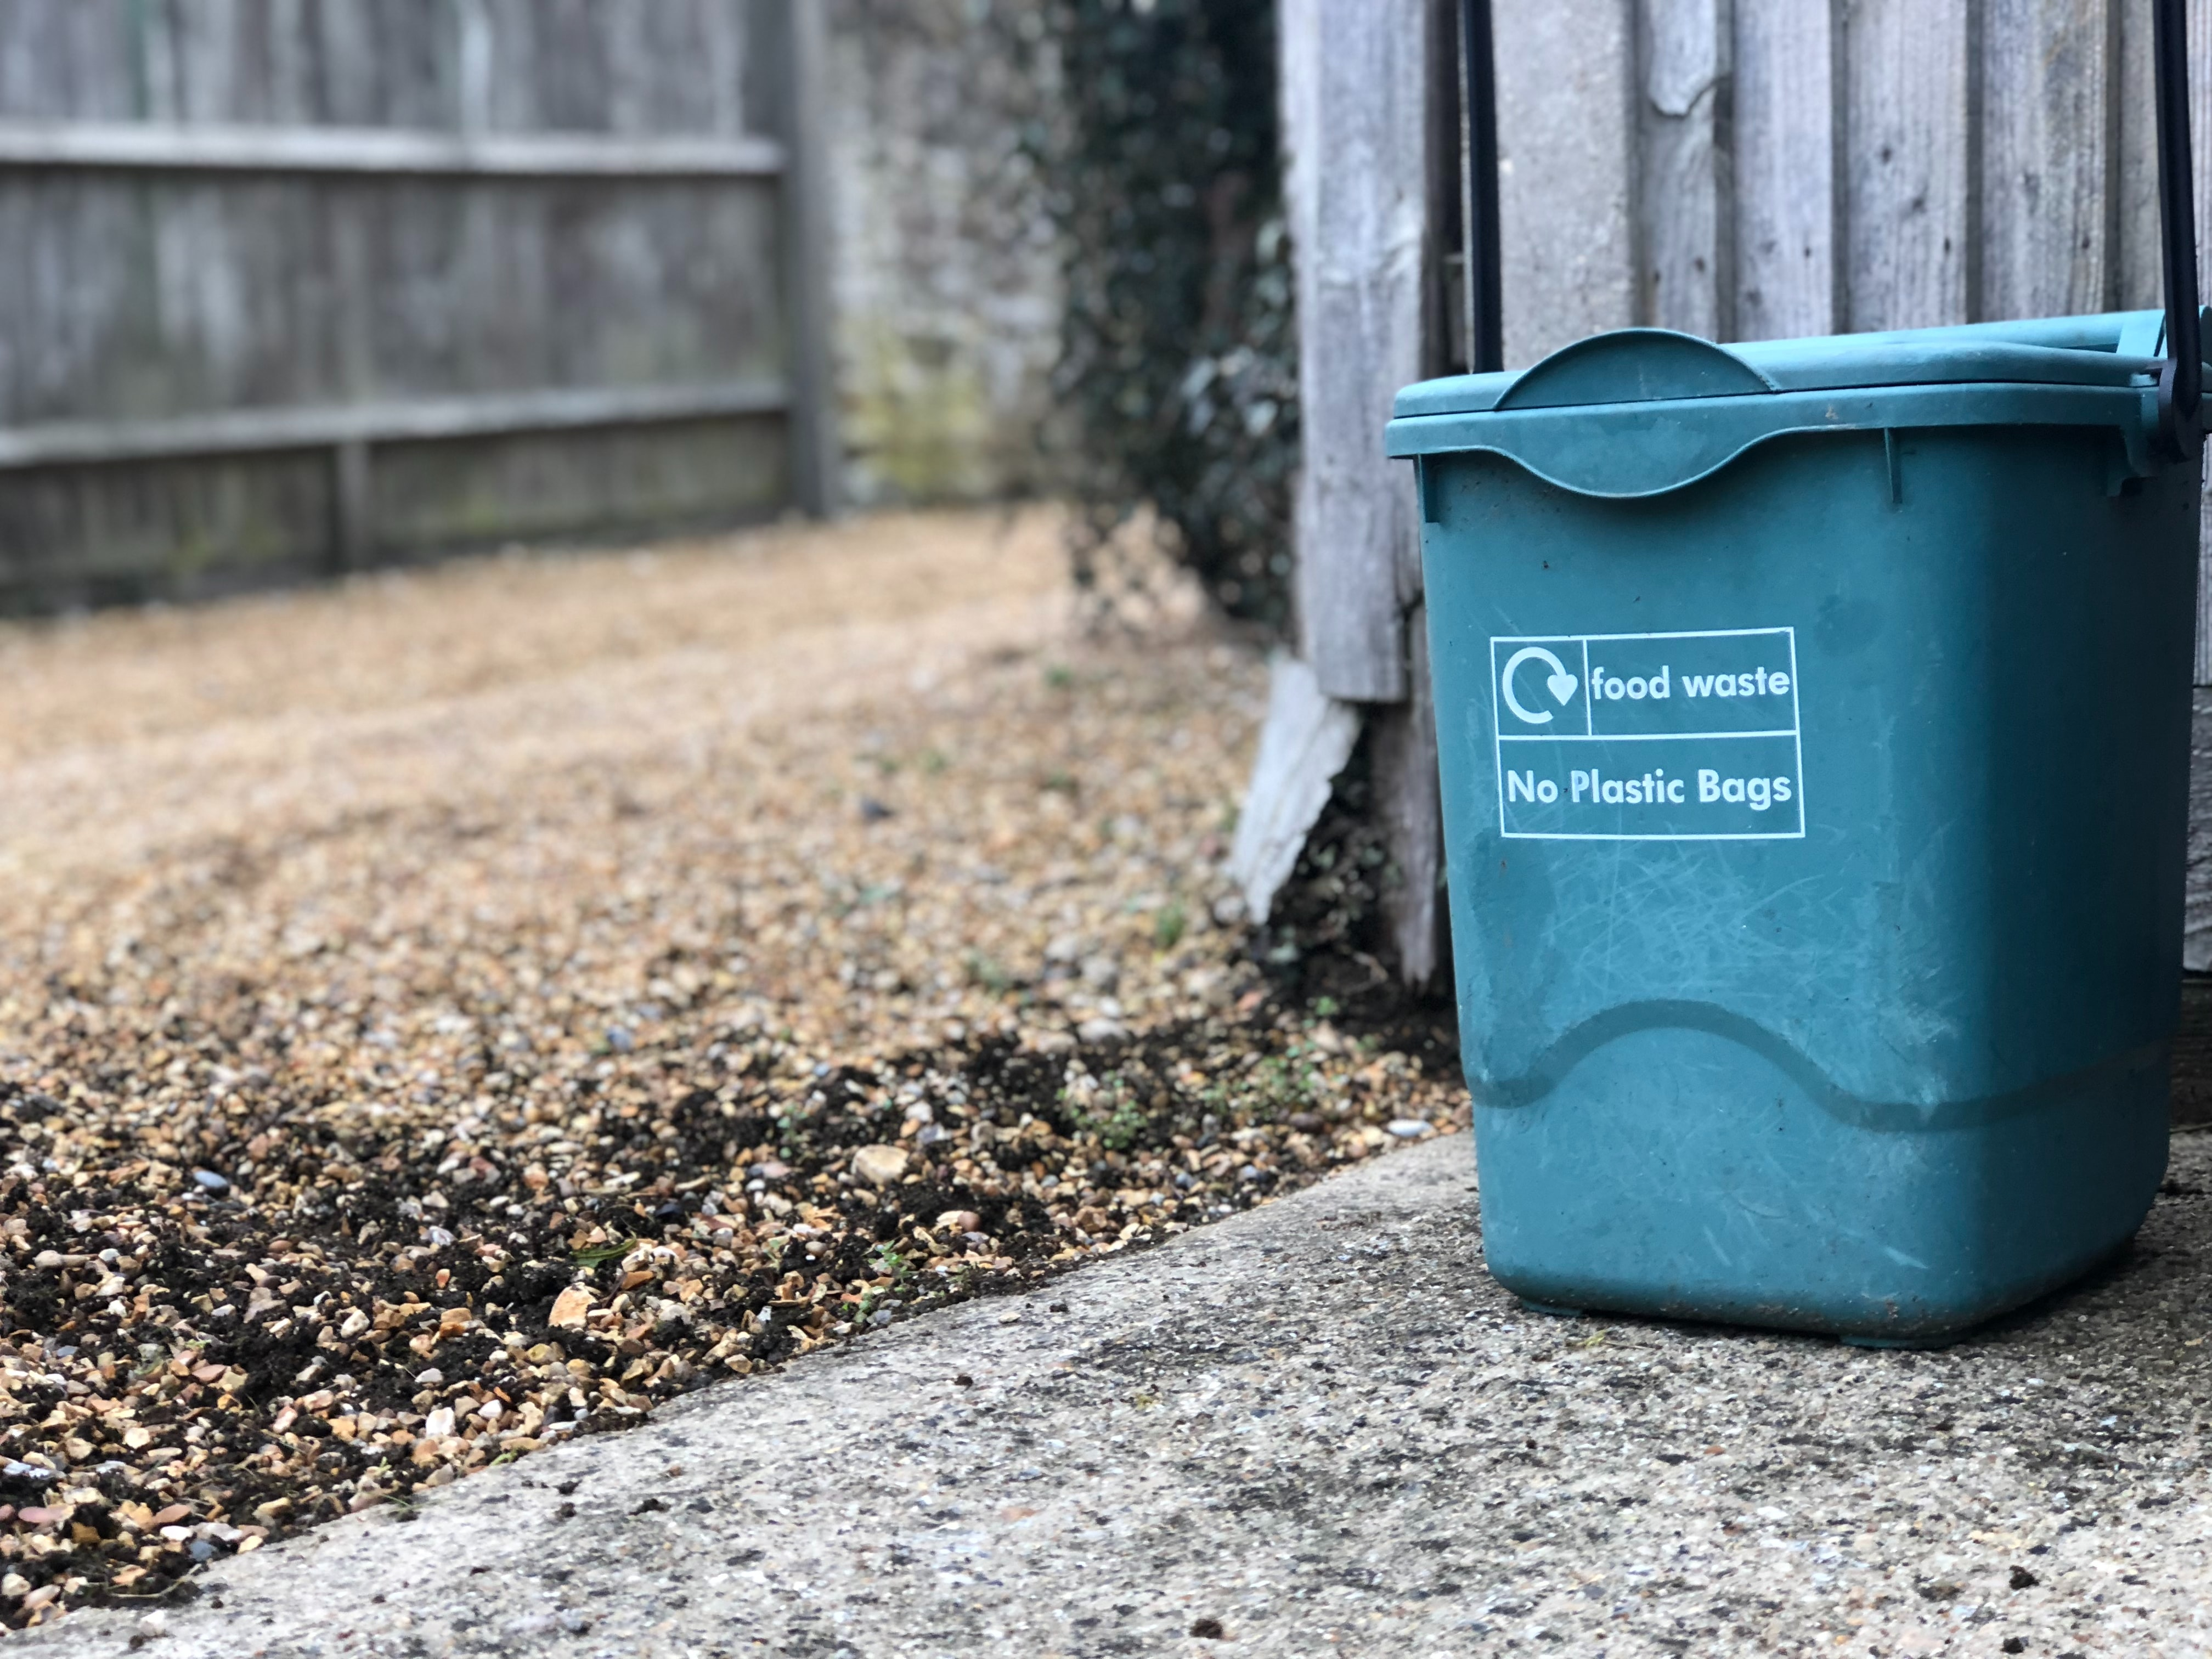 Apartment Residents have Rotten Access to Compost Facilities